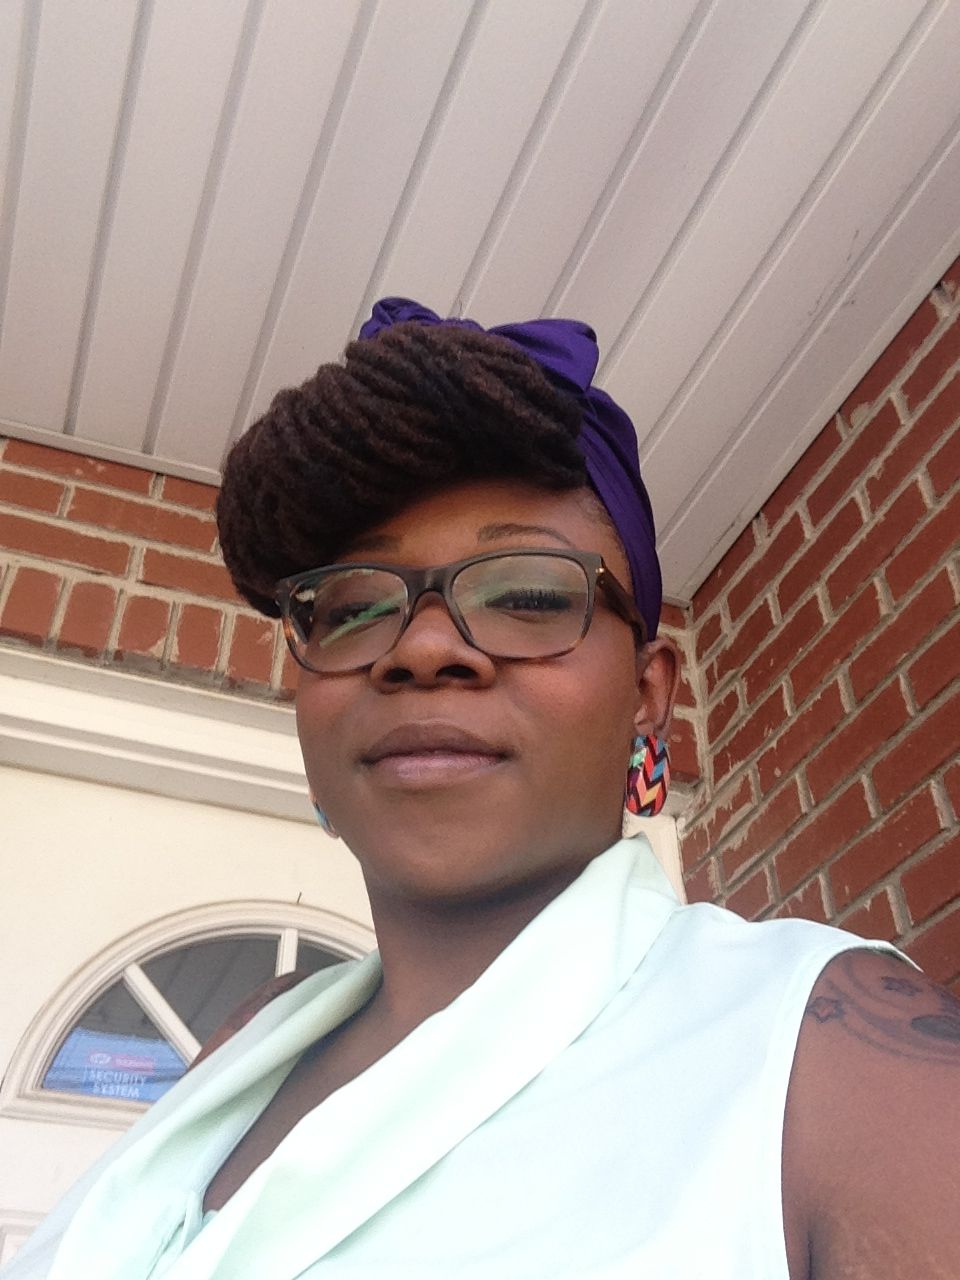 Loc bangs and scarfs locs and glasses happy to be nappy